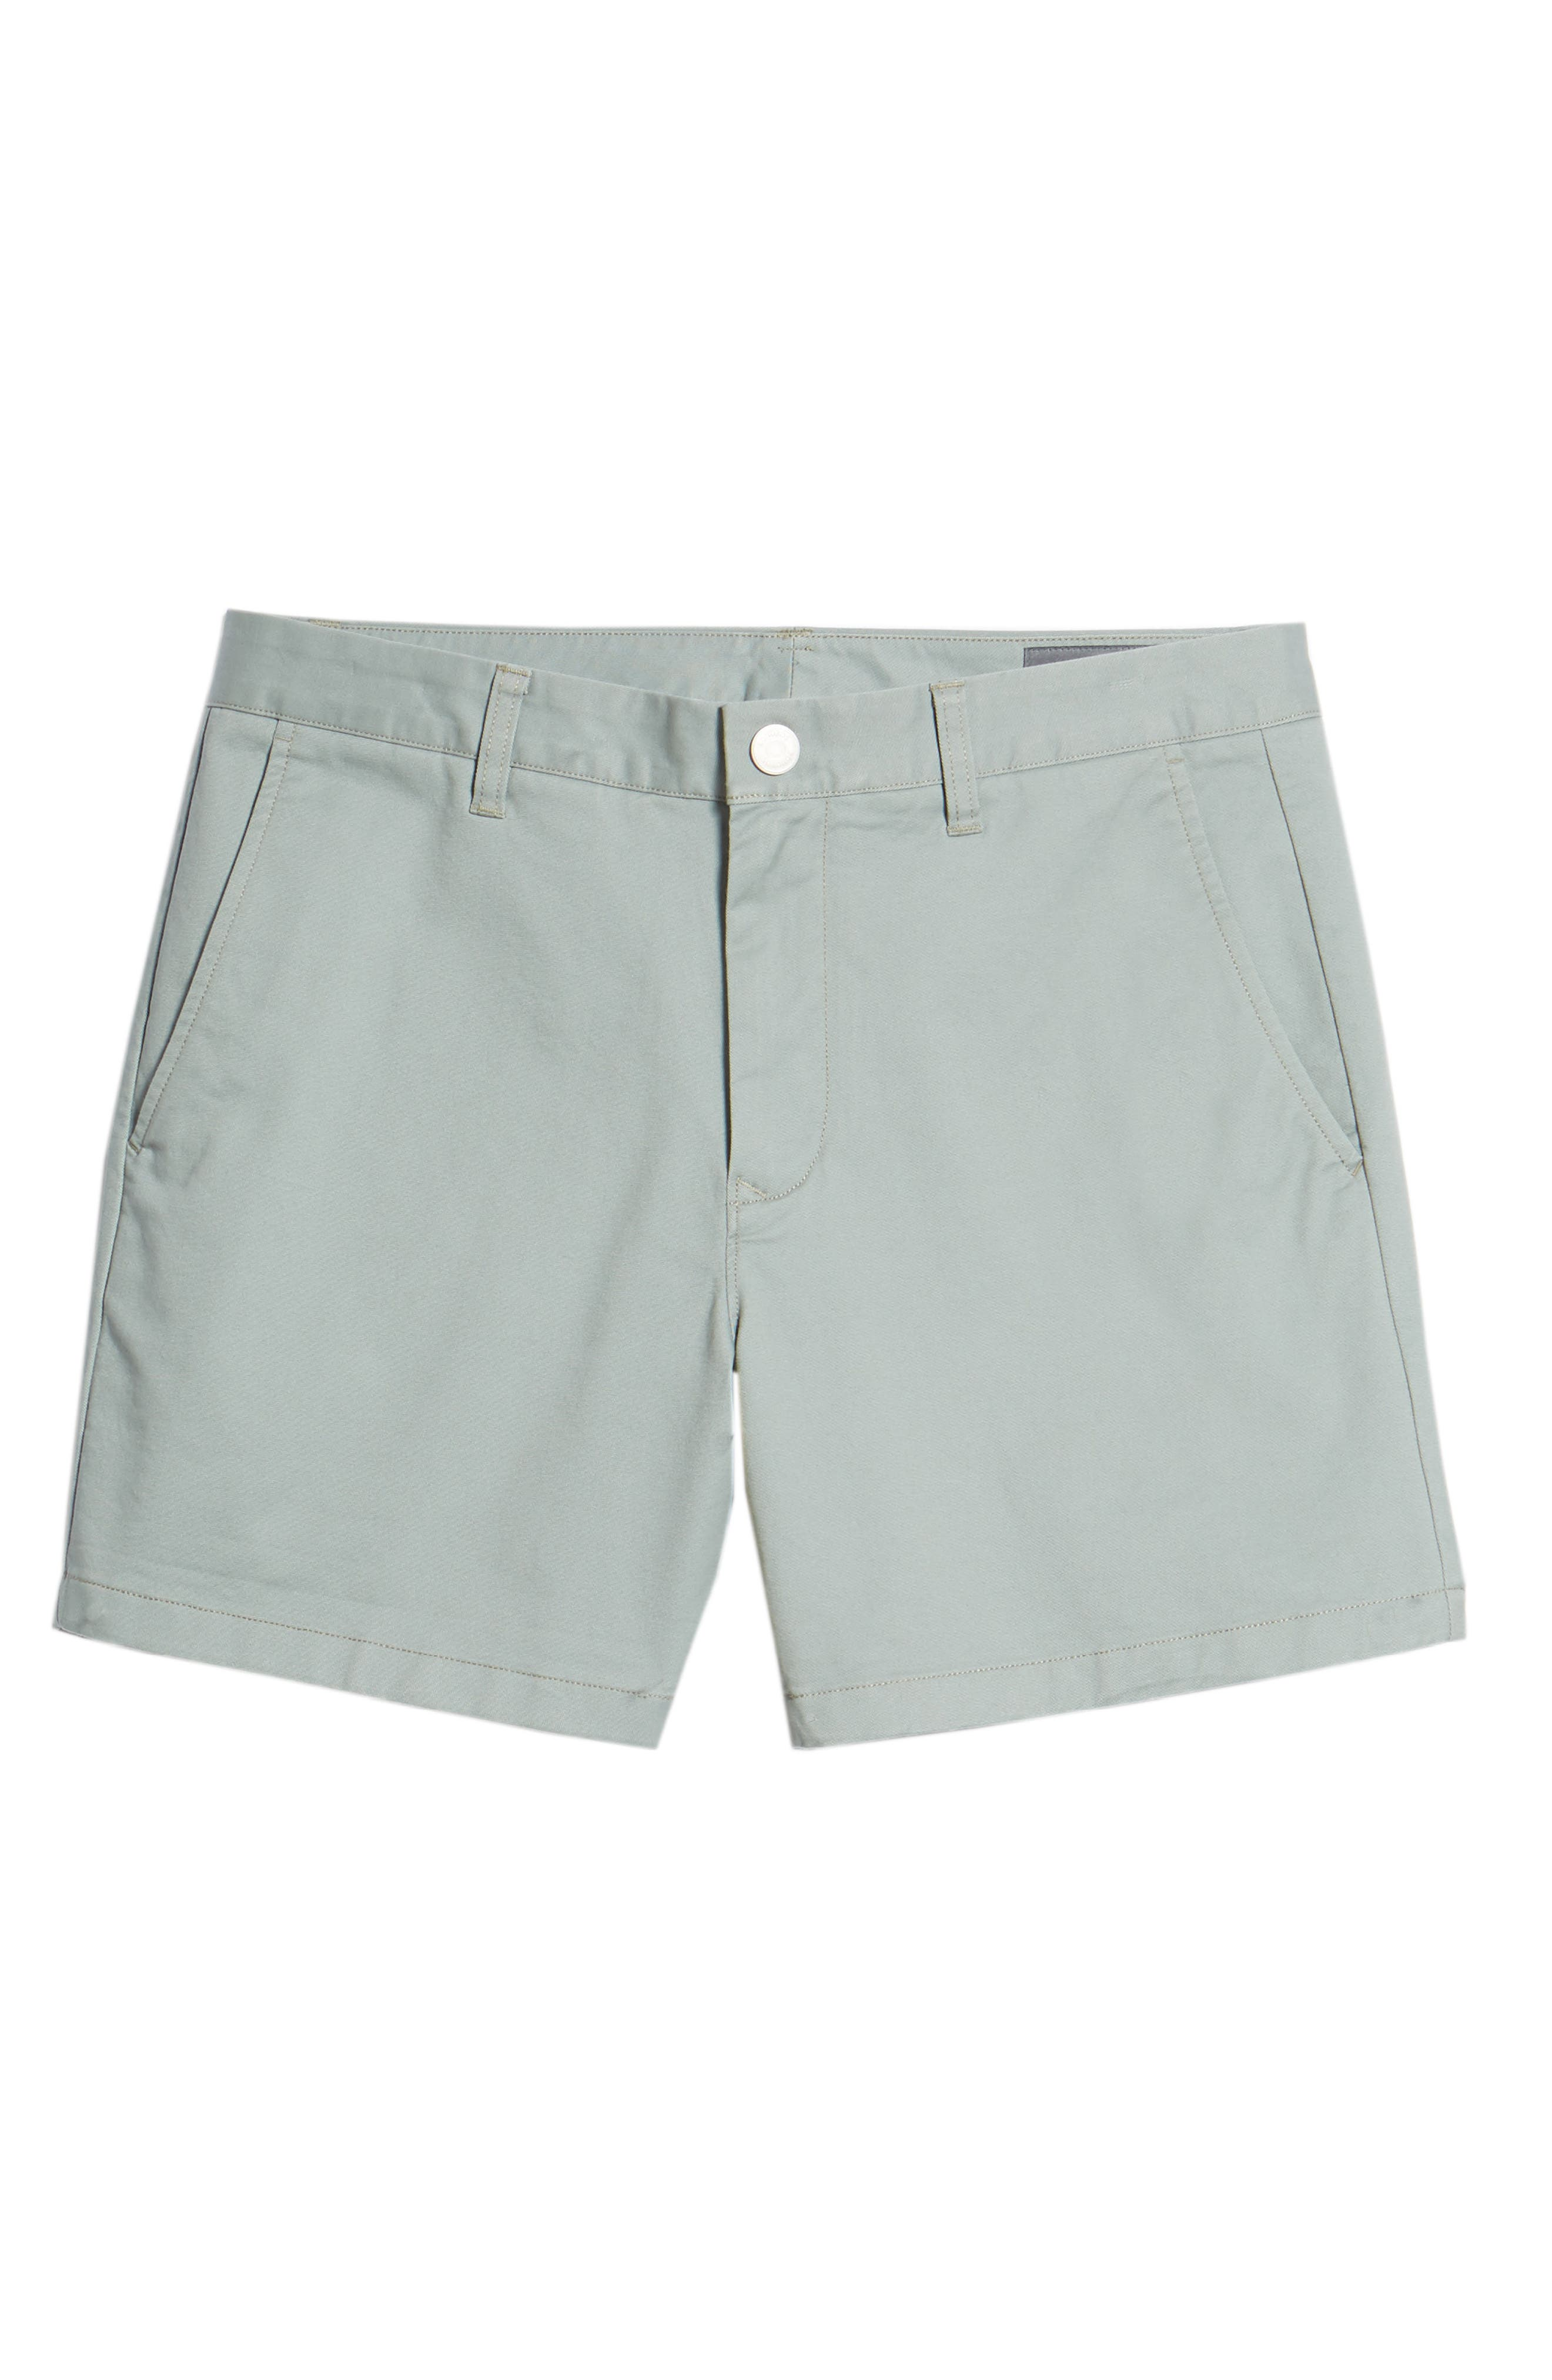 Stretch Washed Chino 5-Inch Shorts,                             Alternate thumbnail 147, color,